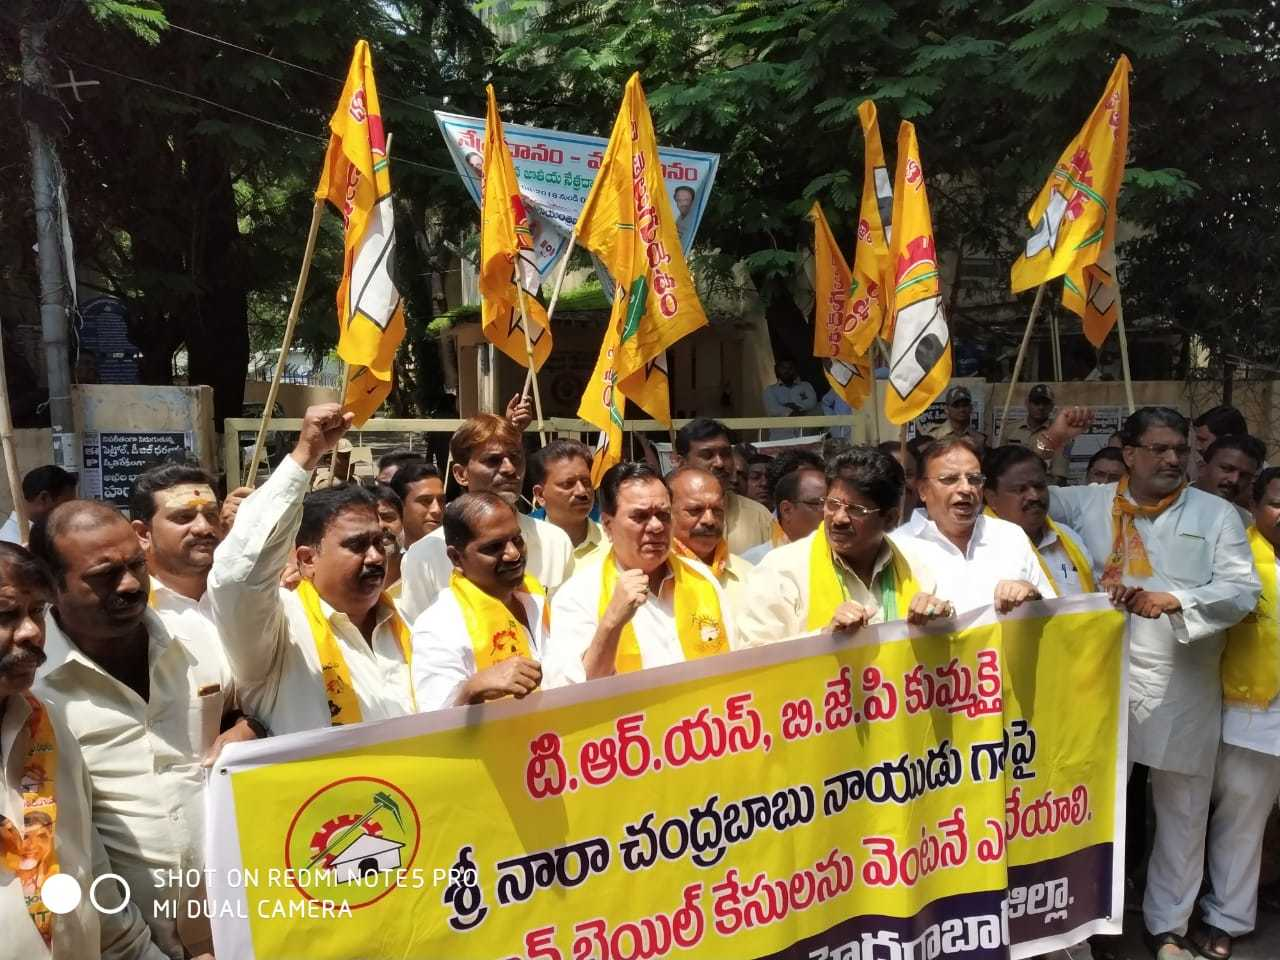 TDP workers stage protest in Hyderabad non-bailable warrant against Andhra Pradesh CM N Chandrababu Naidu